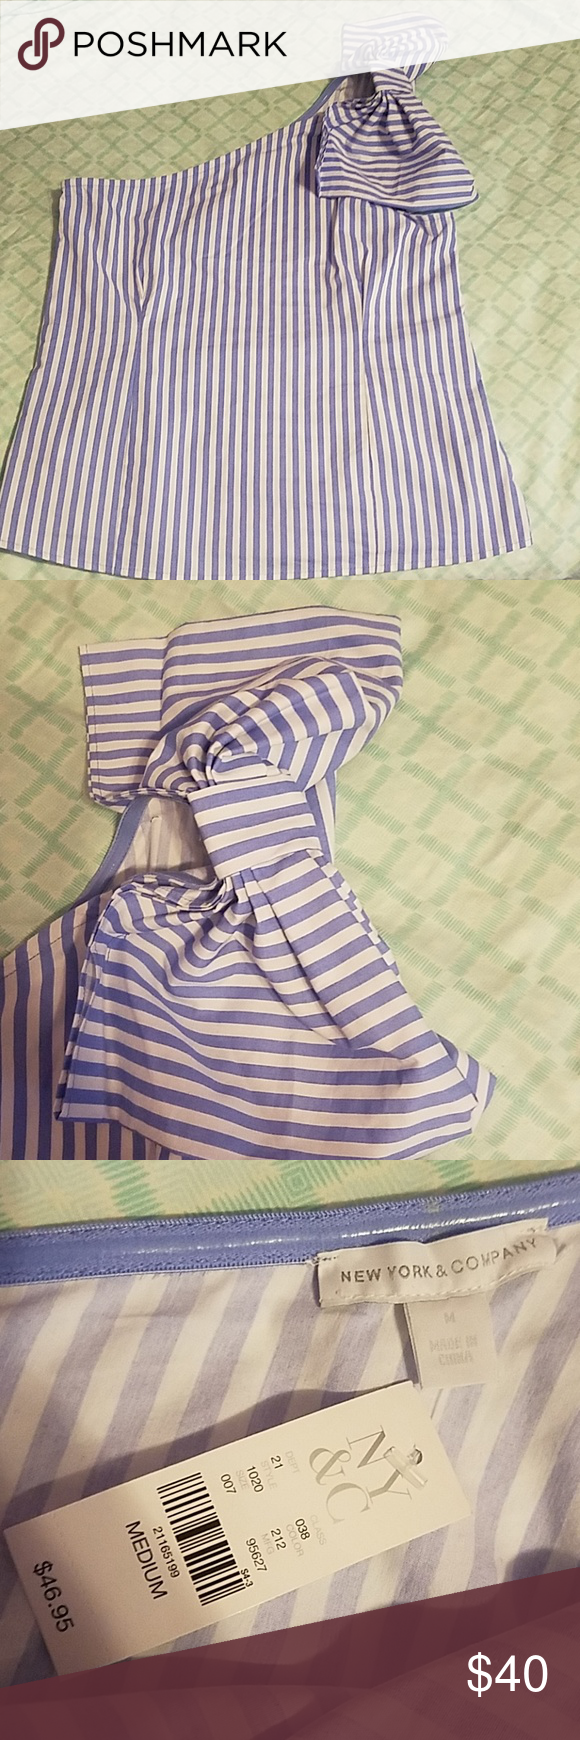 Ny Co Bow Detail One Shoulder Poplin Stripe Top New With Tag 7th Avenue Detailed On Striped Details Size Medium Side